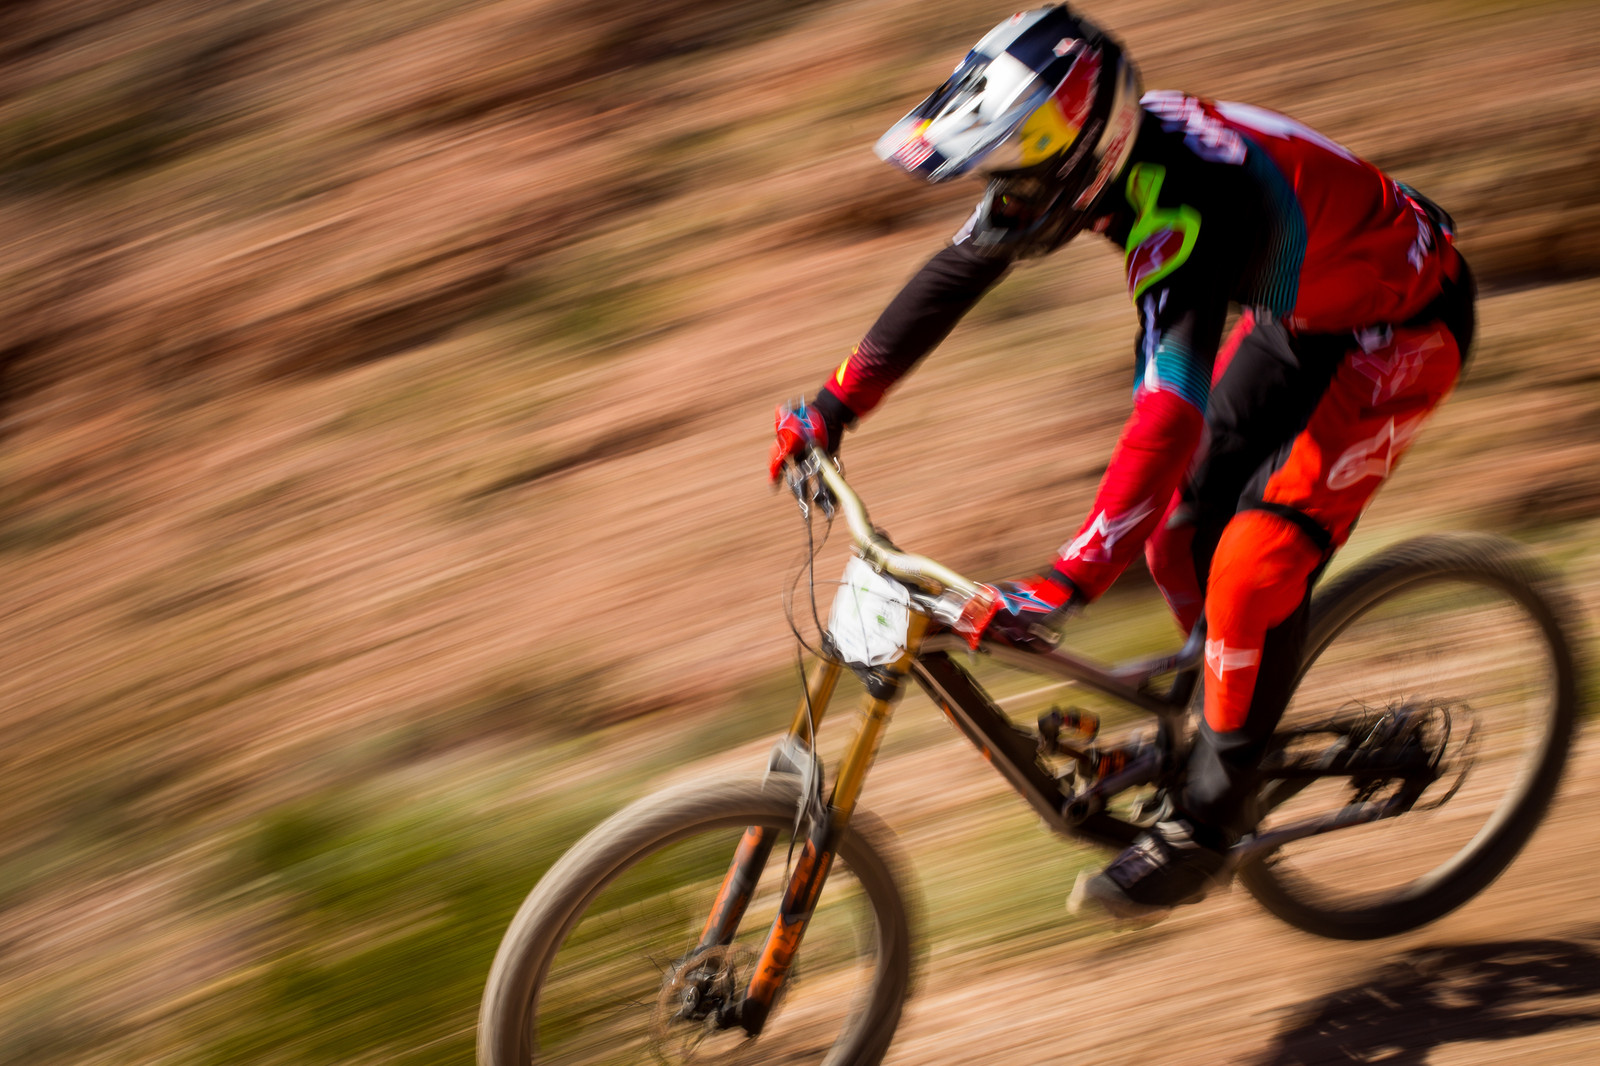 2017 Reaper Madness DH at Bootleg Canyon-9 - 2017 Reaper Madness DH Photos - Mountain Biking Pictures - Vital MTB